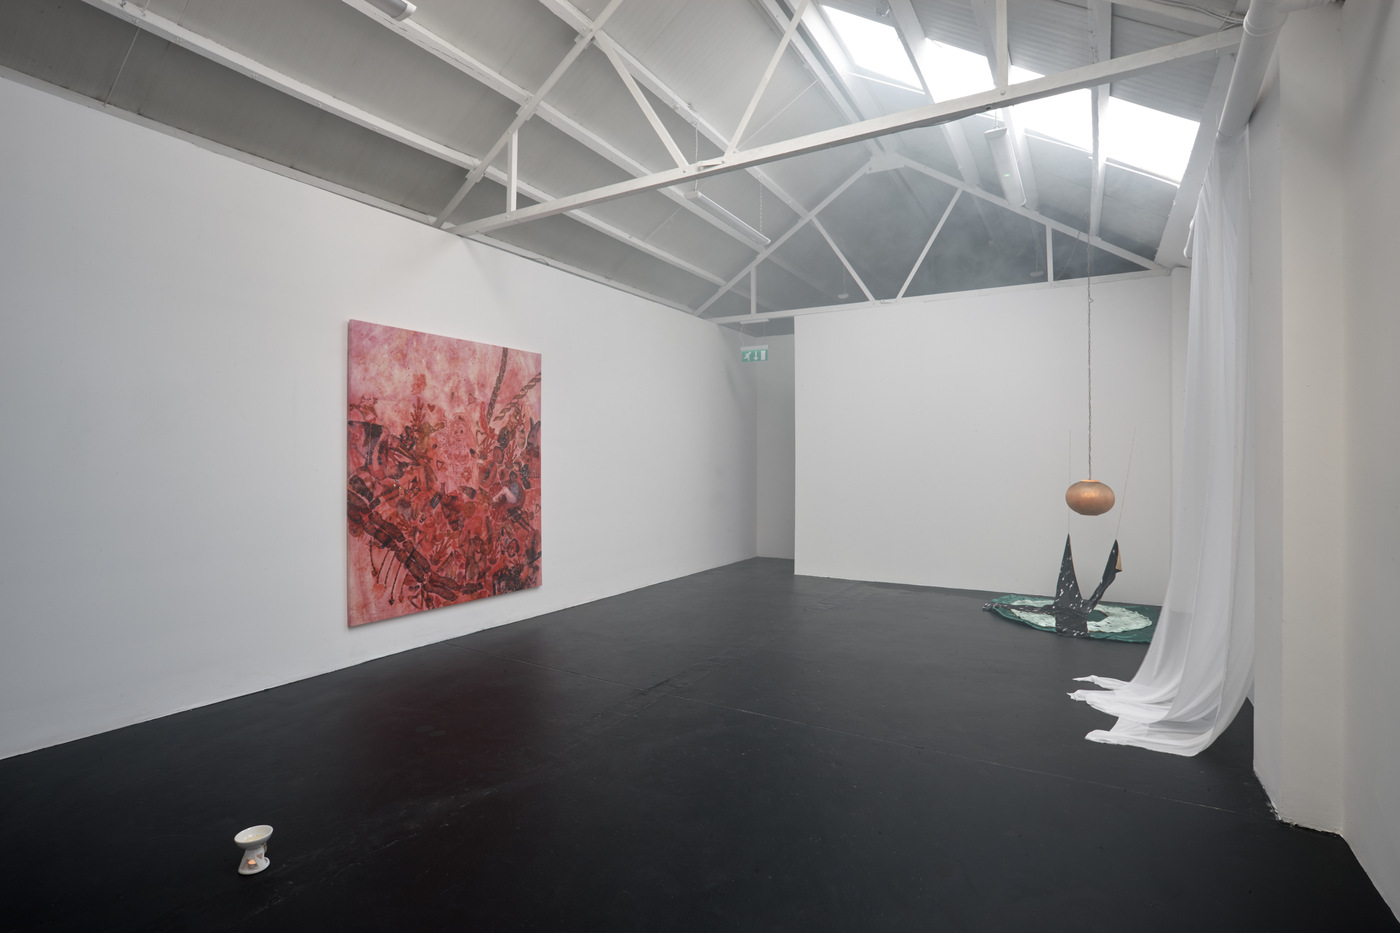 Take this Gum and Stick it - Installation View I